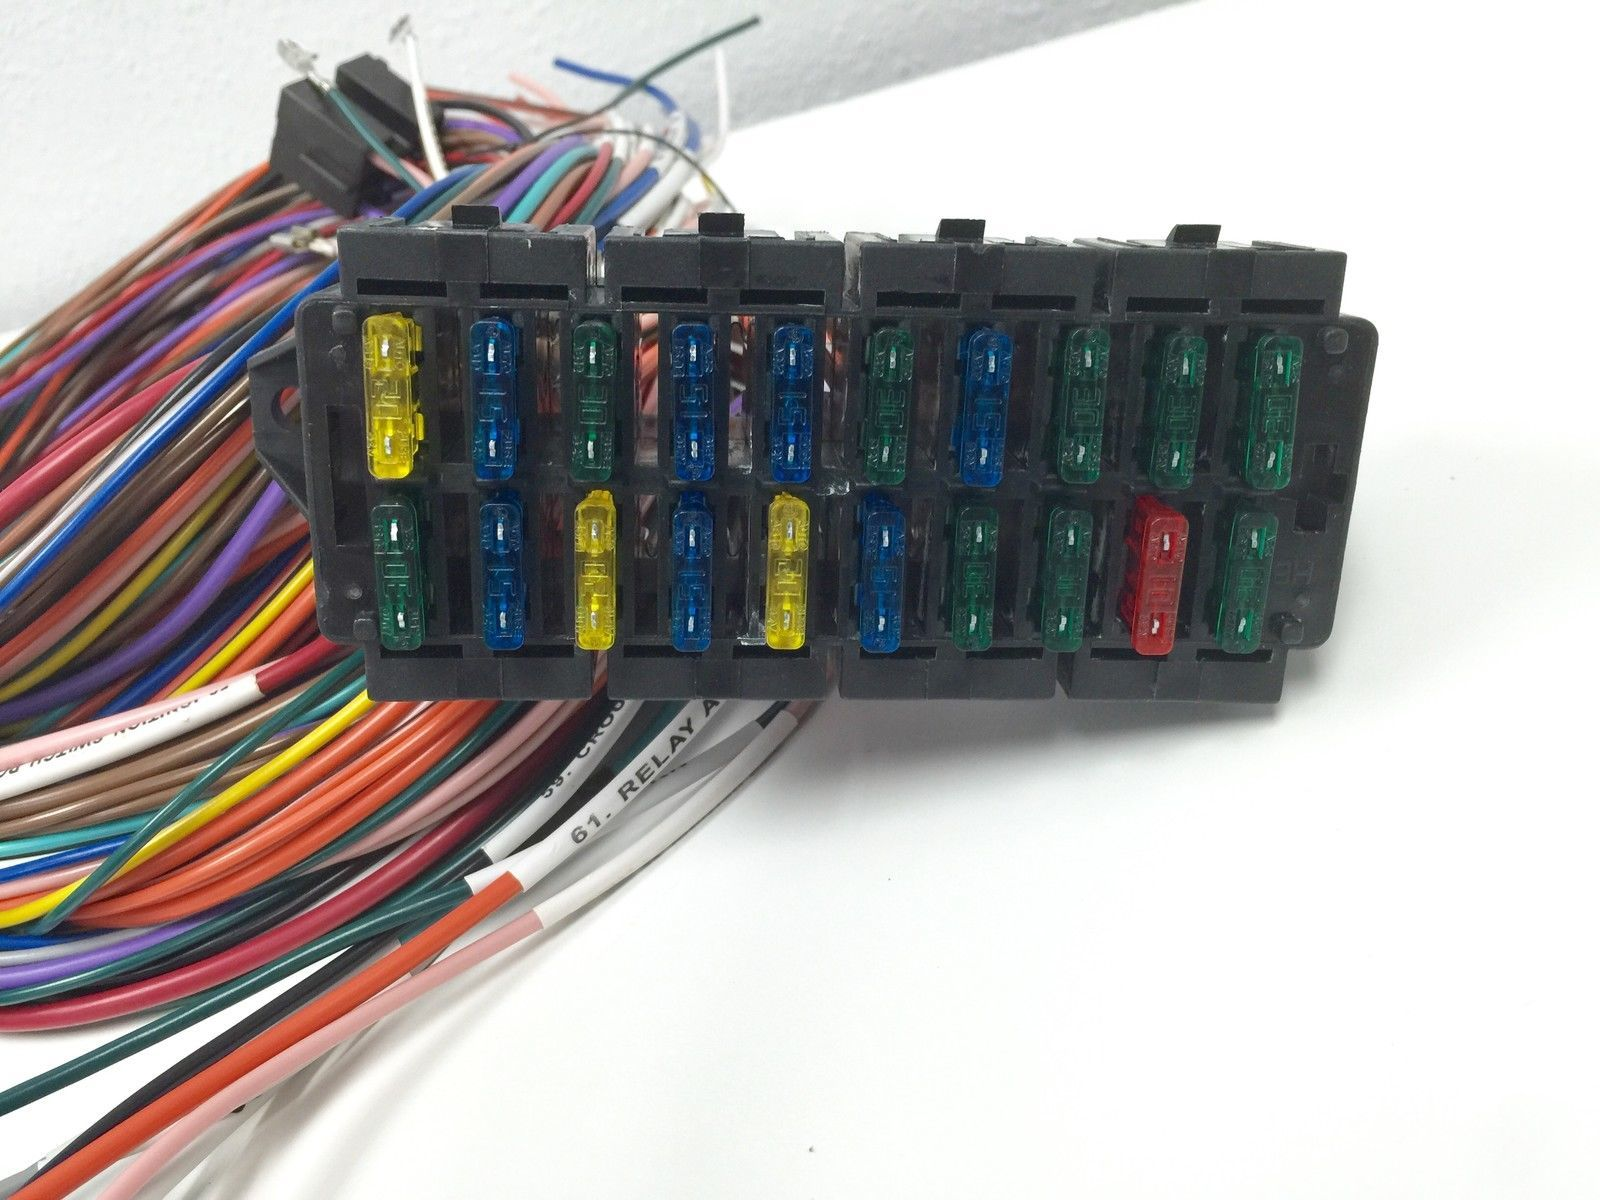 ss1002 complete universal 12v 24 circuit 20 fuse wiring harness wire kit v8 rat hot rod 428061666 complete universal 12v 24 circuit 20 fuse wiring harness wire kit wiring harness wire at gsmportal.co